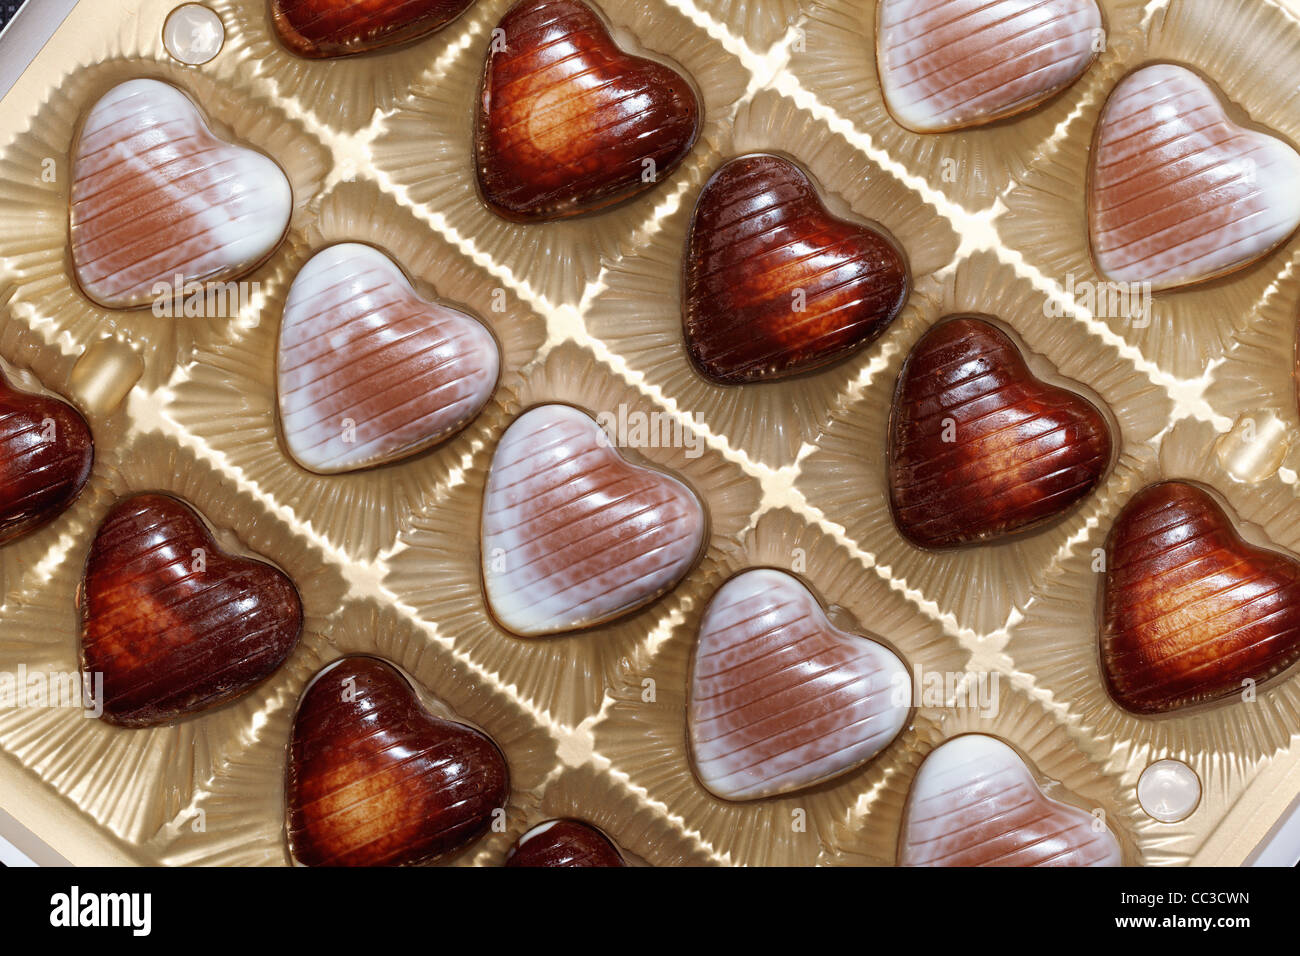 Heart shape chocolate in box close-up - Stock Image